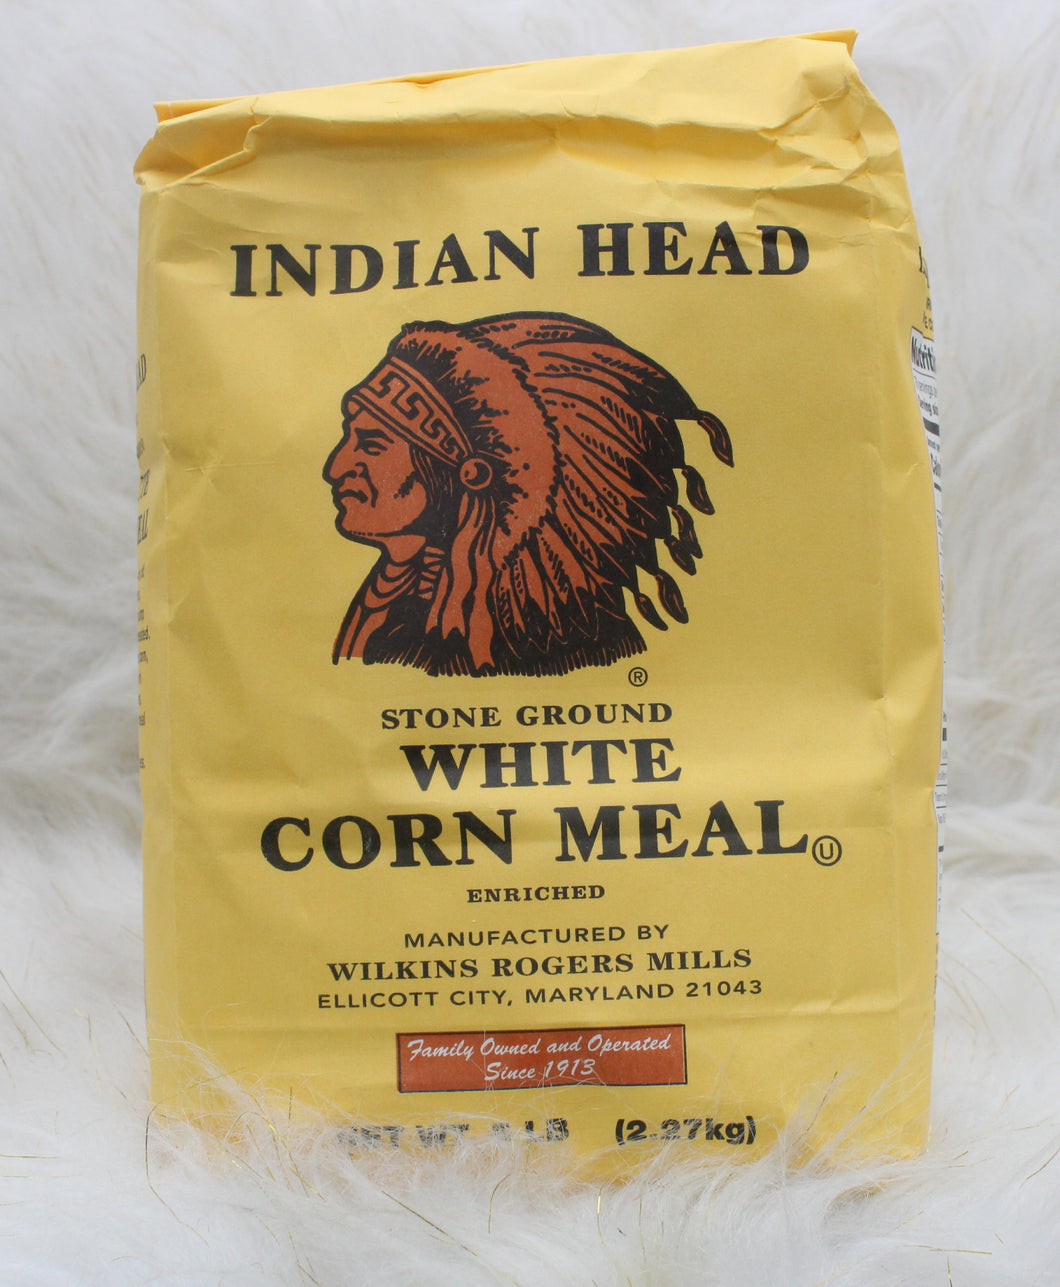 INDIAN HEAD| White Corn Meal